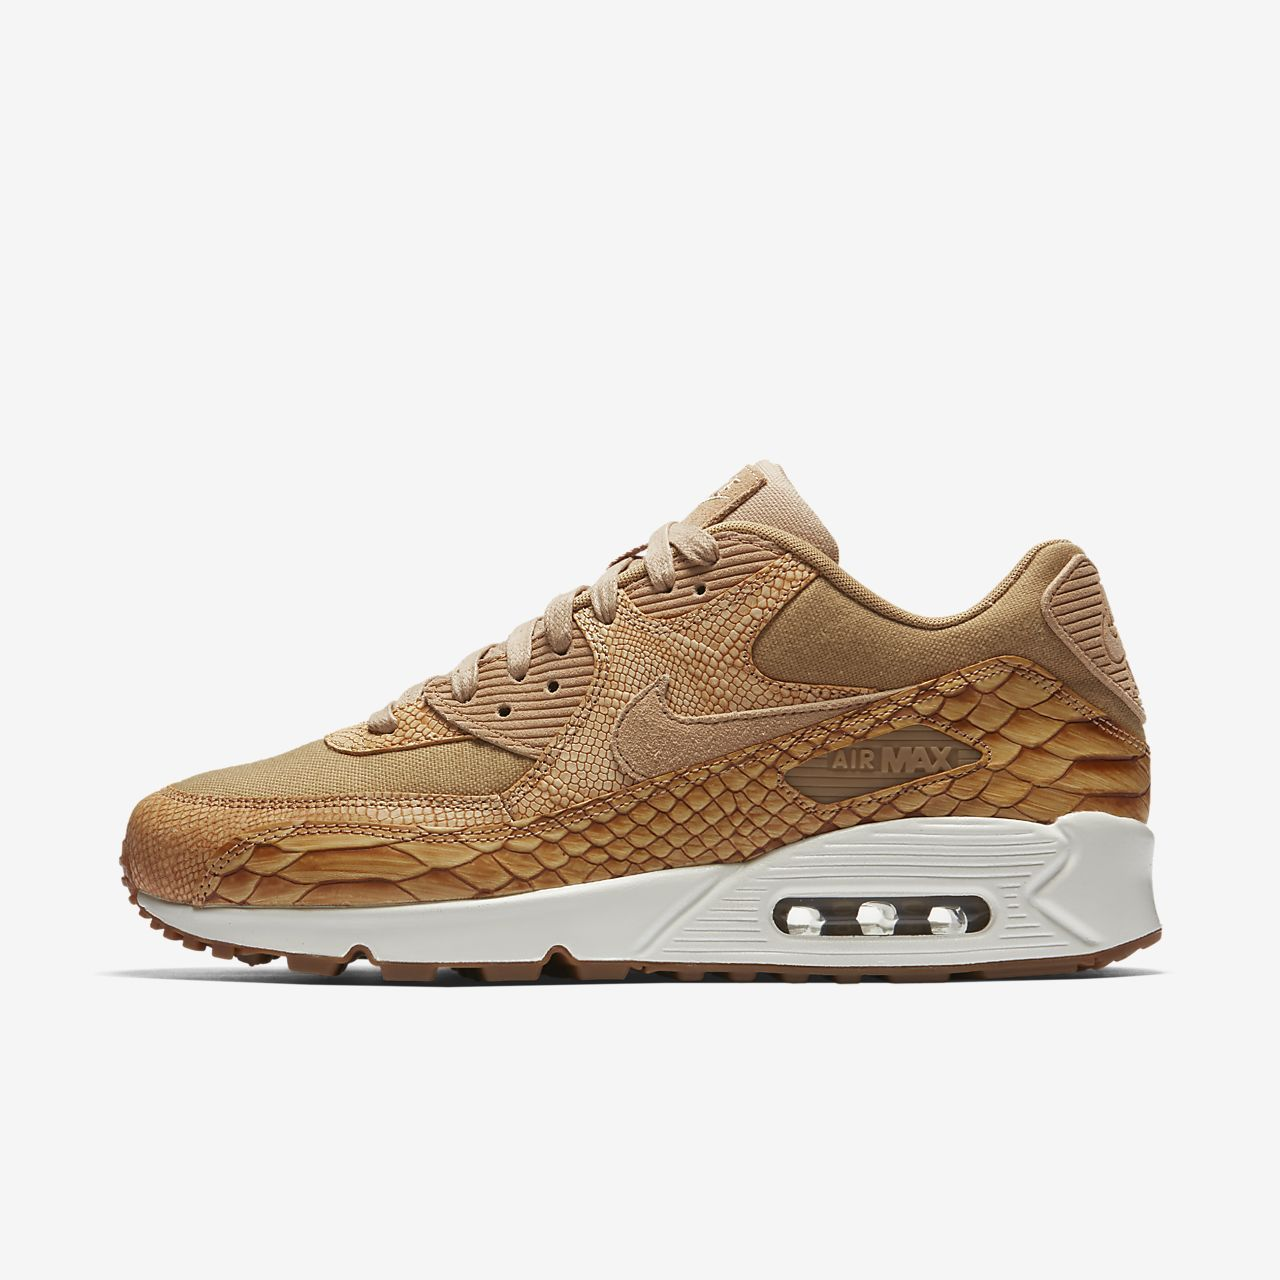 97aa8303879c0e  150 Nike Air Max 90 Premium Men s Shoe SOLD by NIKE.com The Nike ...